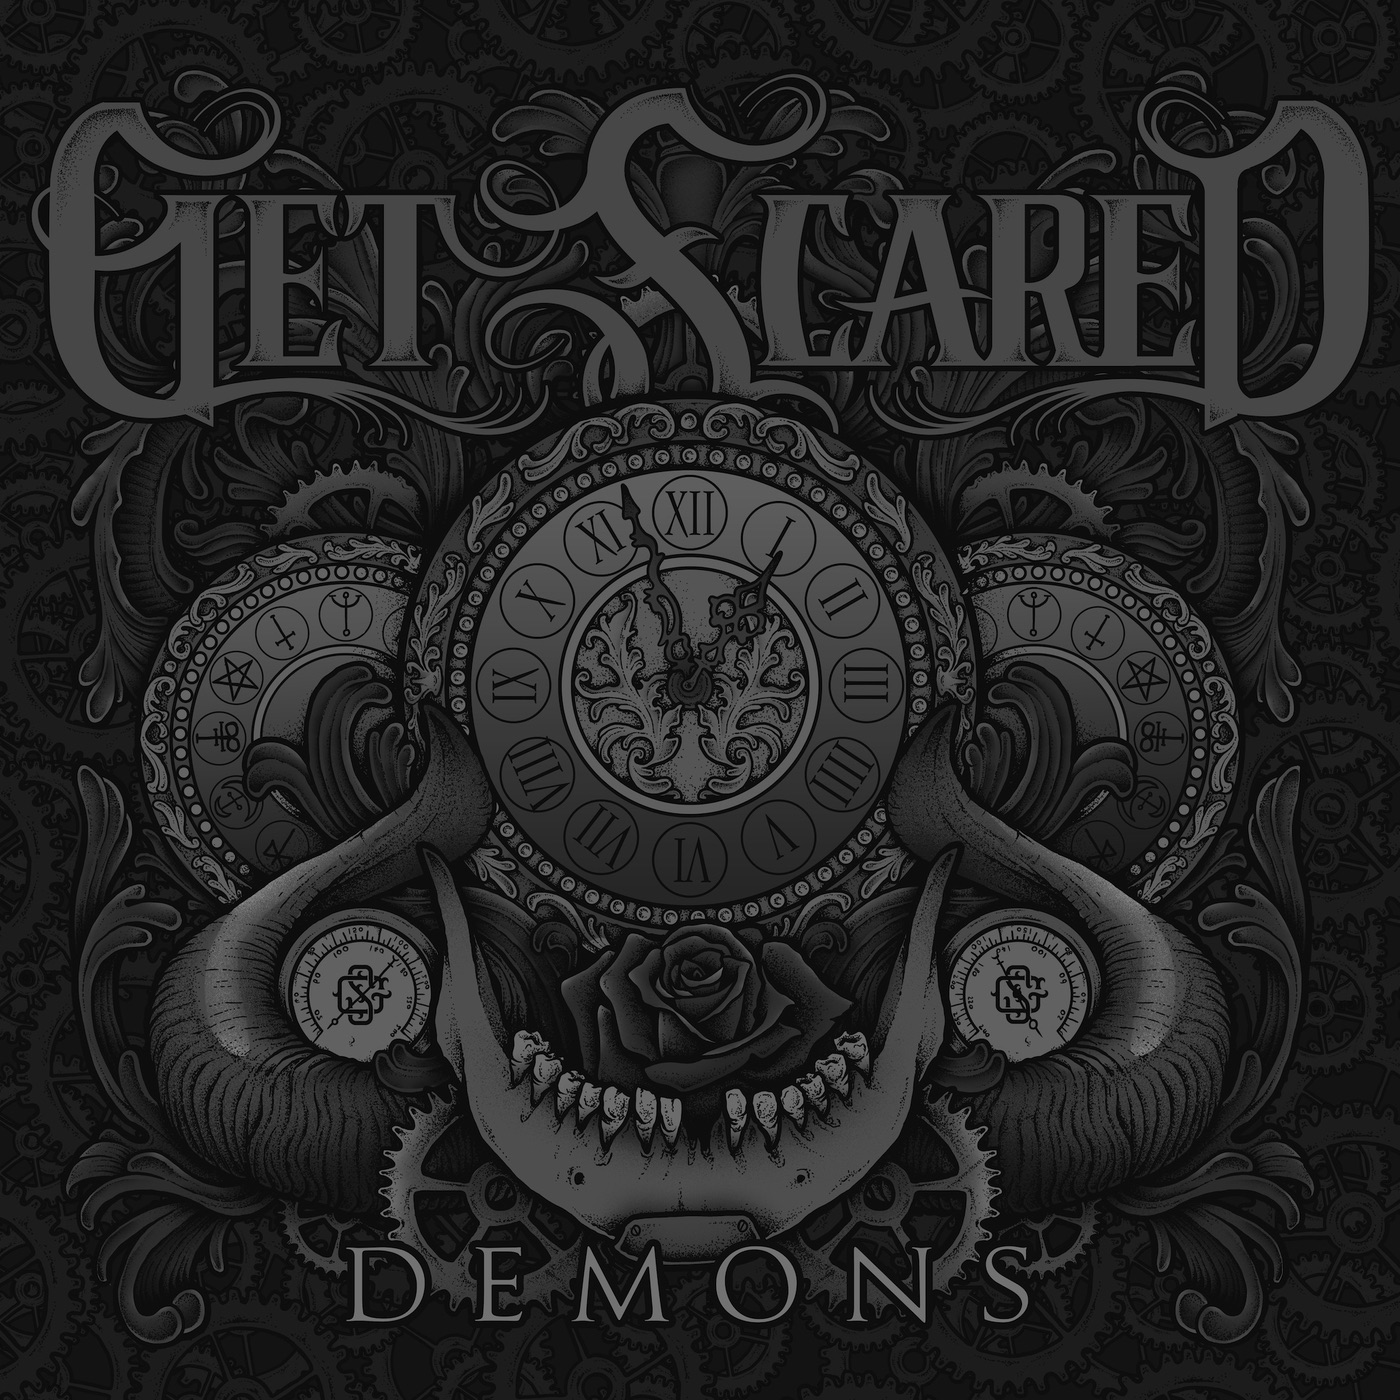 Get Scared - Demons (2015)